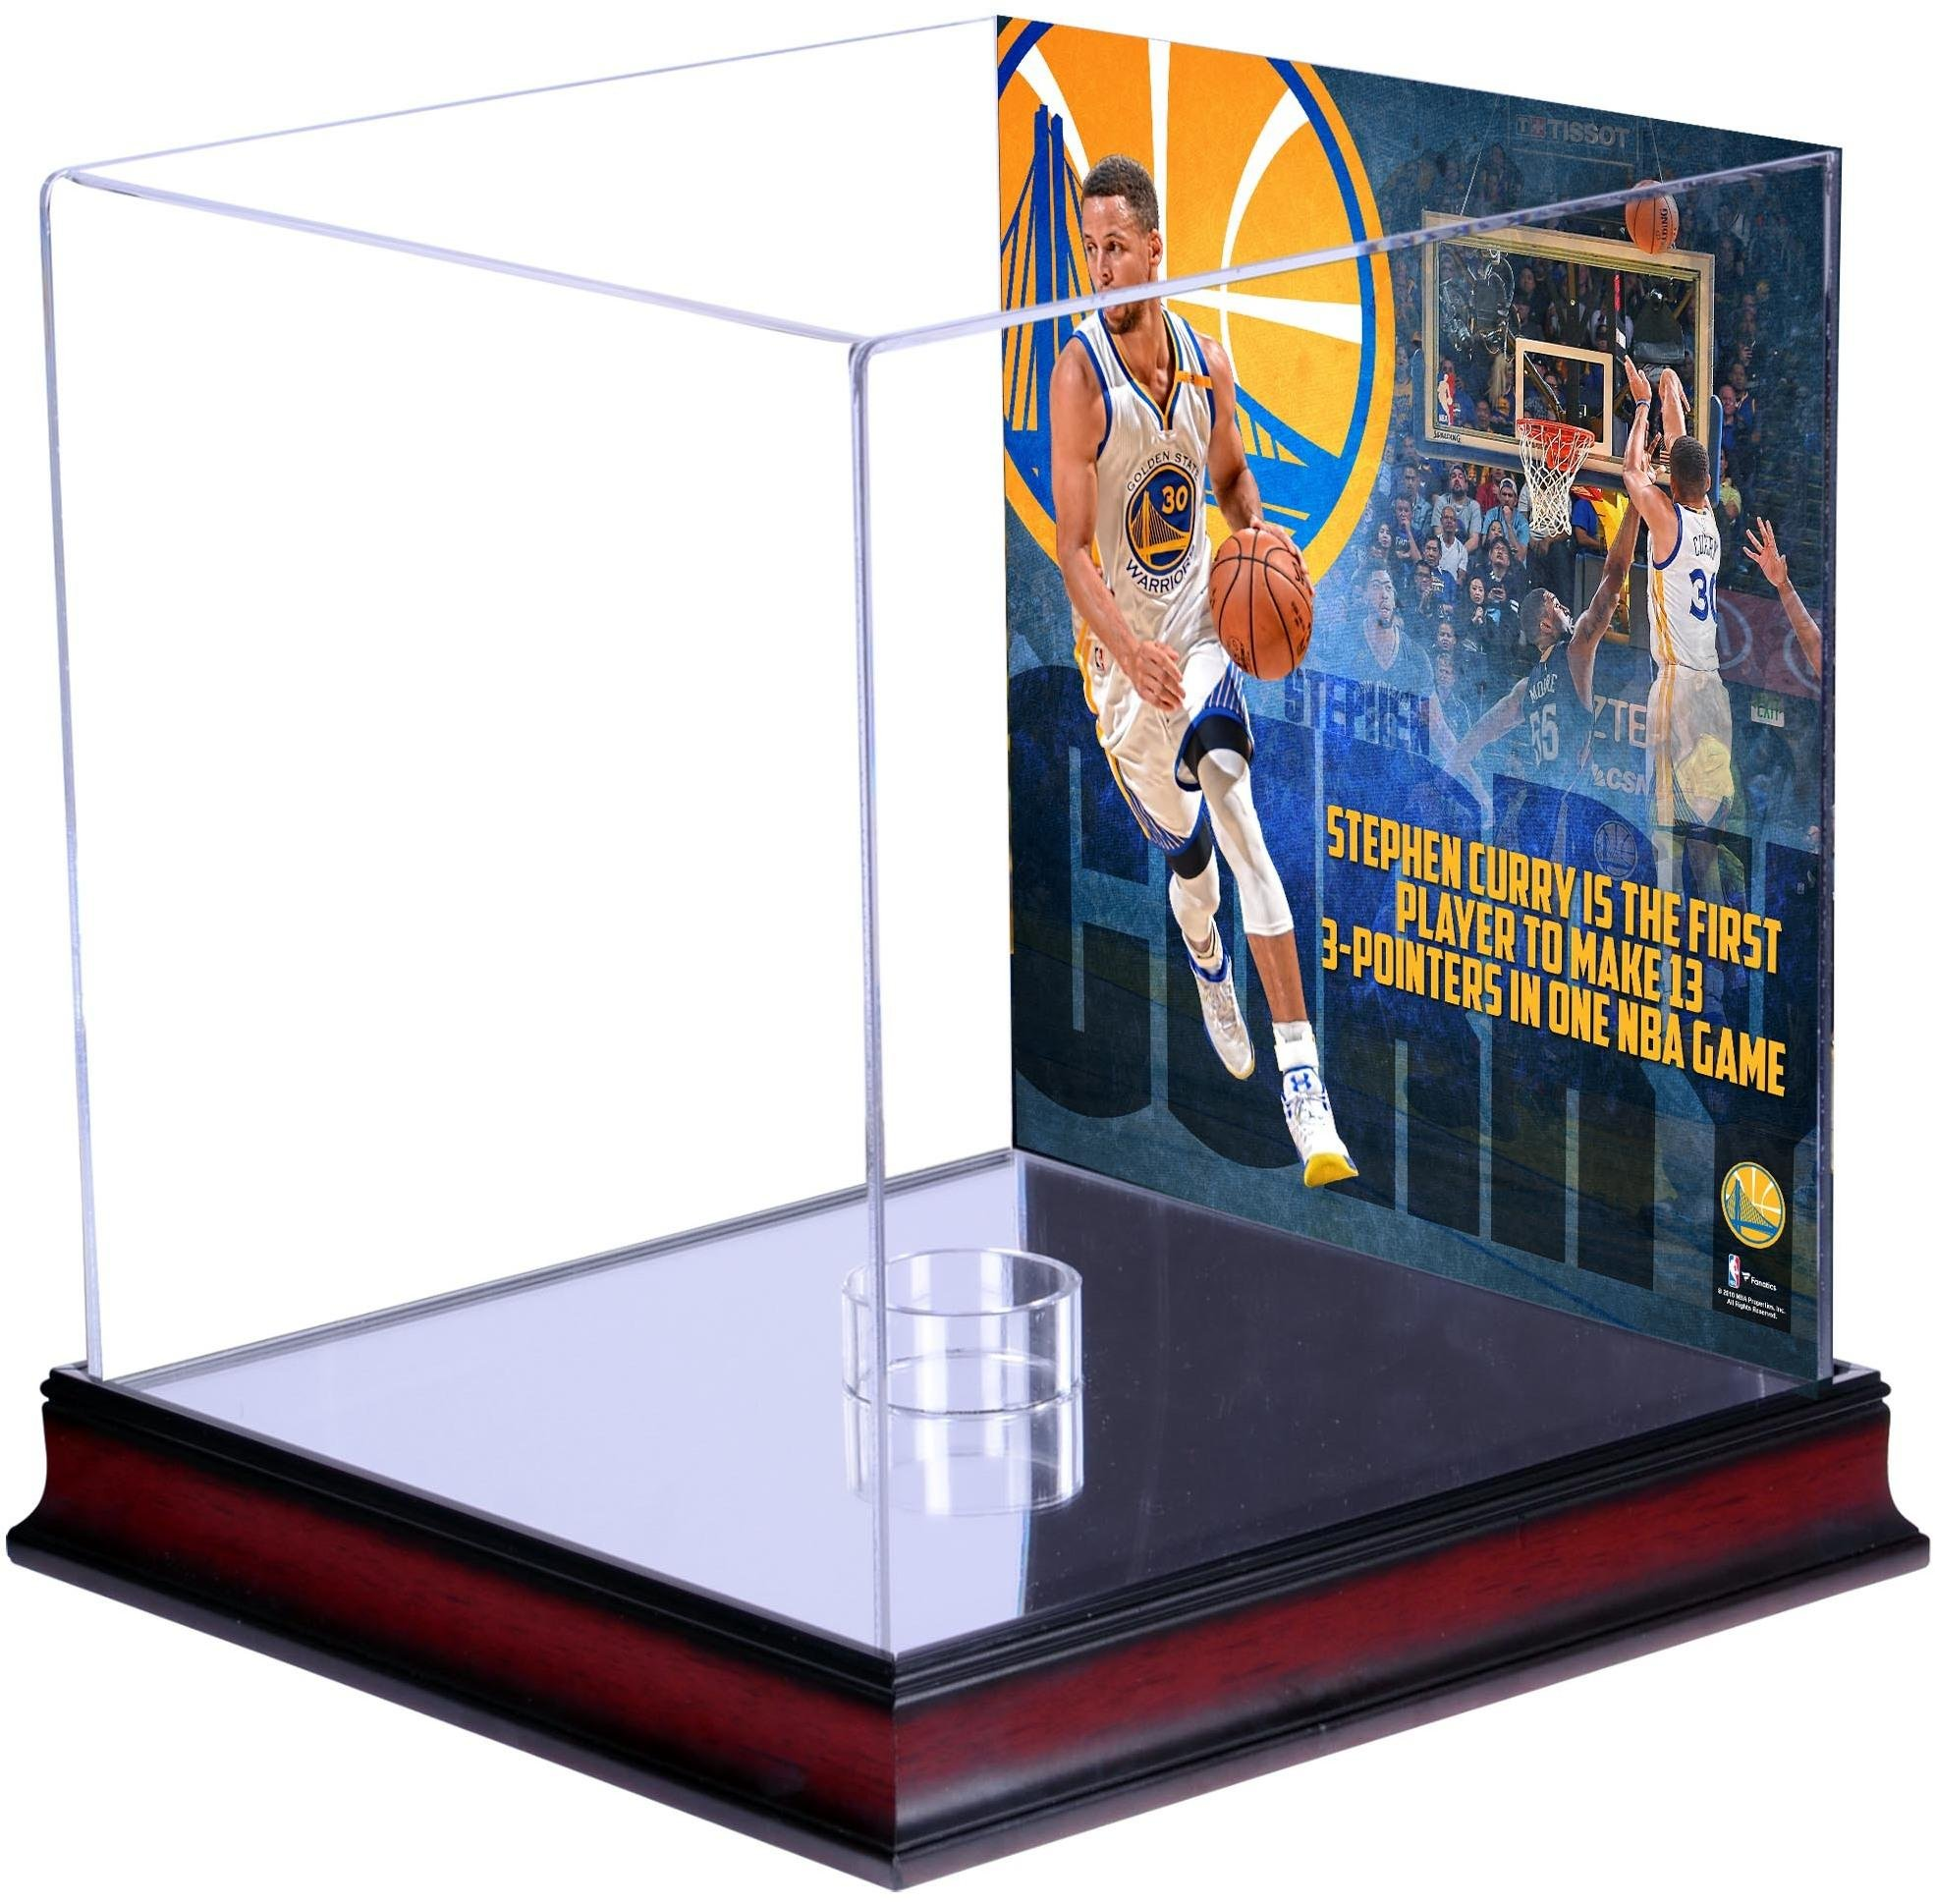 Stephen Curry Golden State Warriors Mahogany Basketball Display Case with NBA Record 13 3-Pointers Sublimated Plate - Fanatics Authentic Certified by Sports Memorabilia